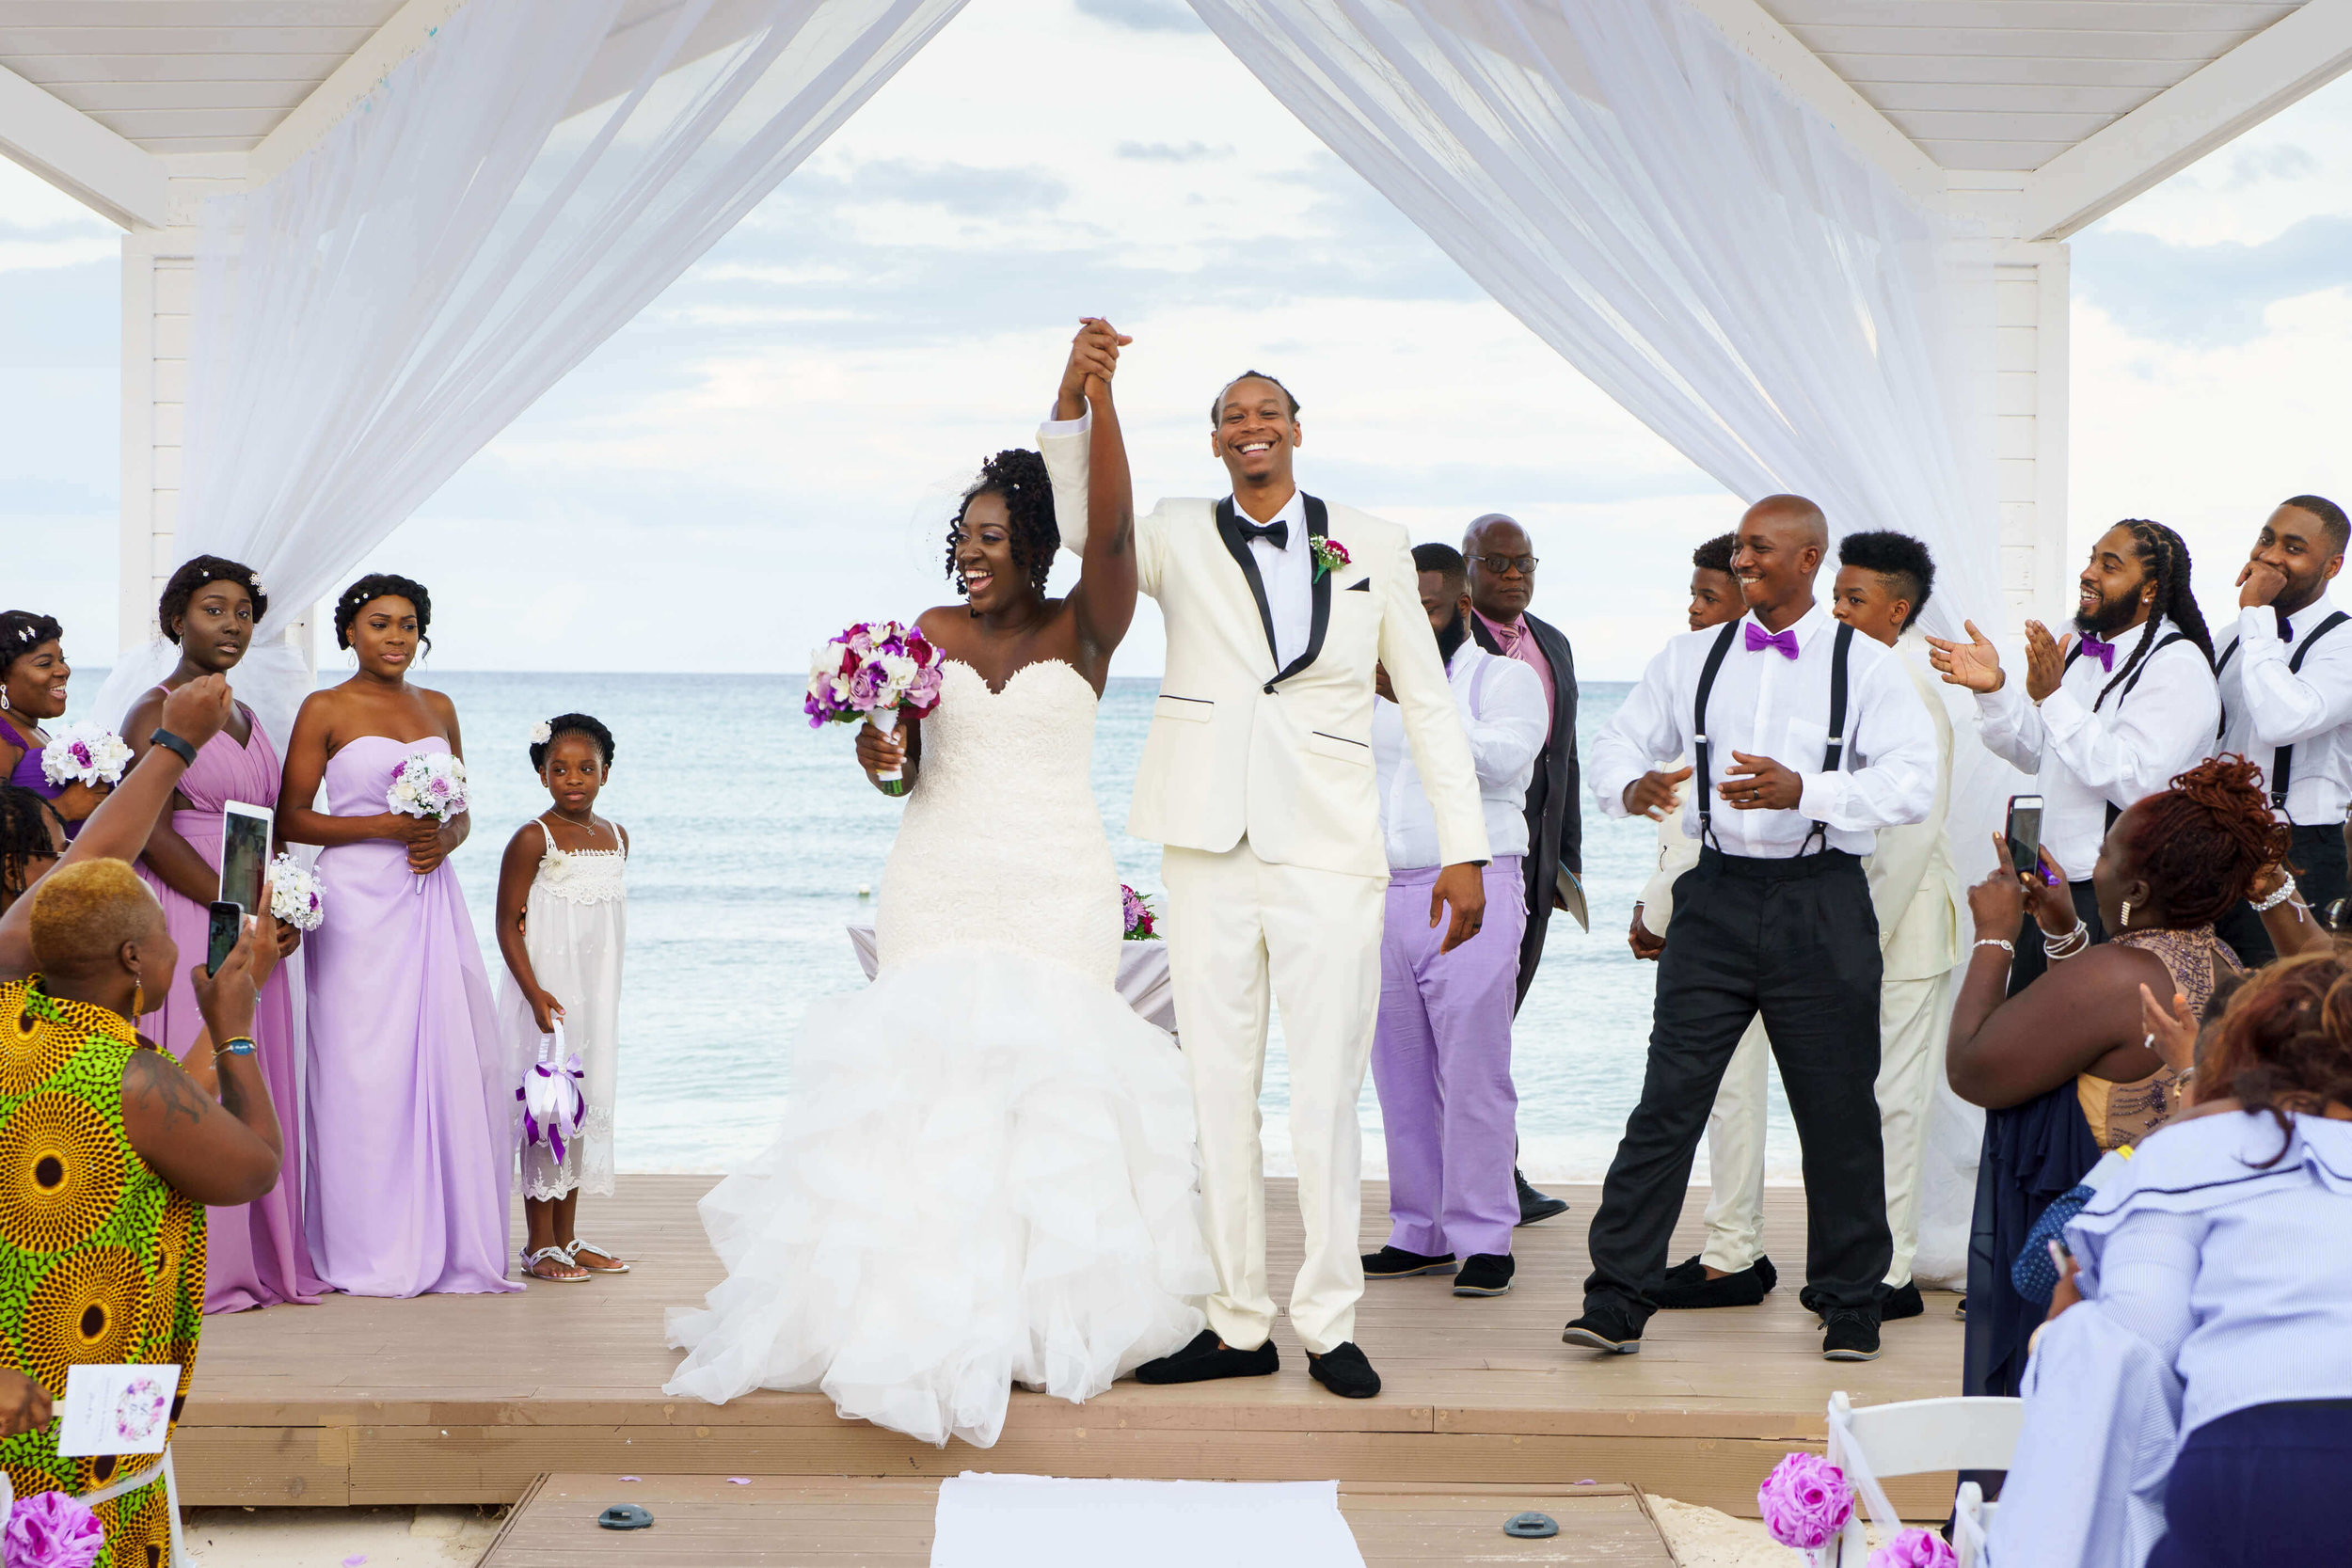 jamellah-how-to-plan-a-destination-wedding-in-montego-bay-jamaica-royalton-blue-waters-black-destination-bride-destiland-desti-guide-to-destination-weddings-beach-ceremony.jpg